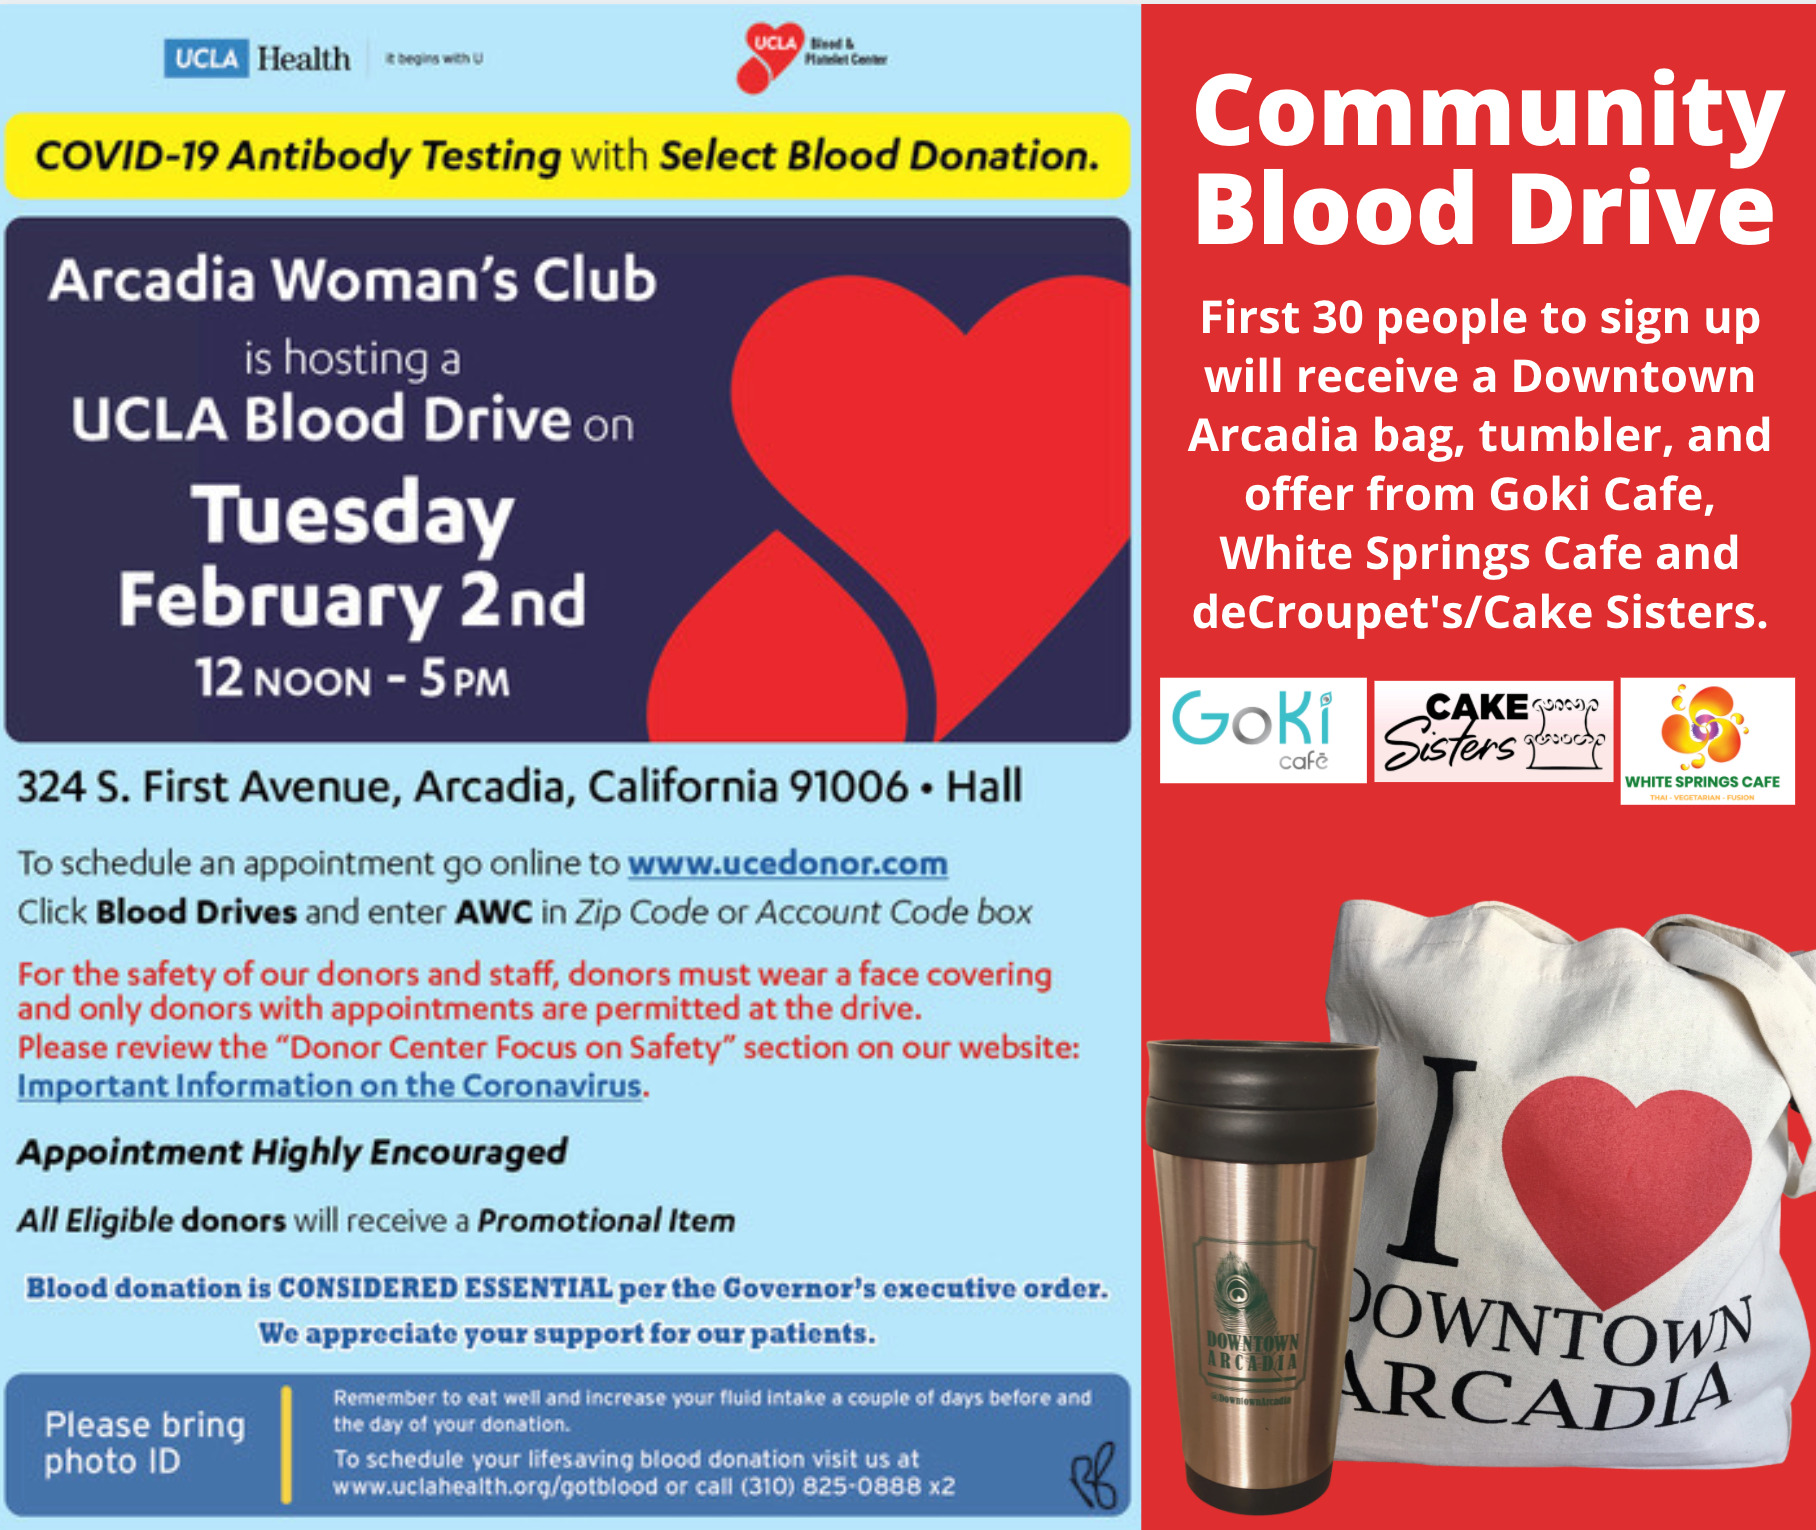 Woman's Club Community Blood Drive